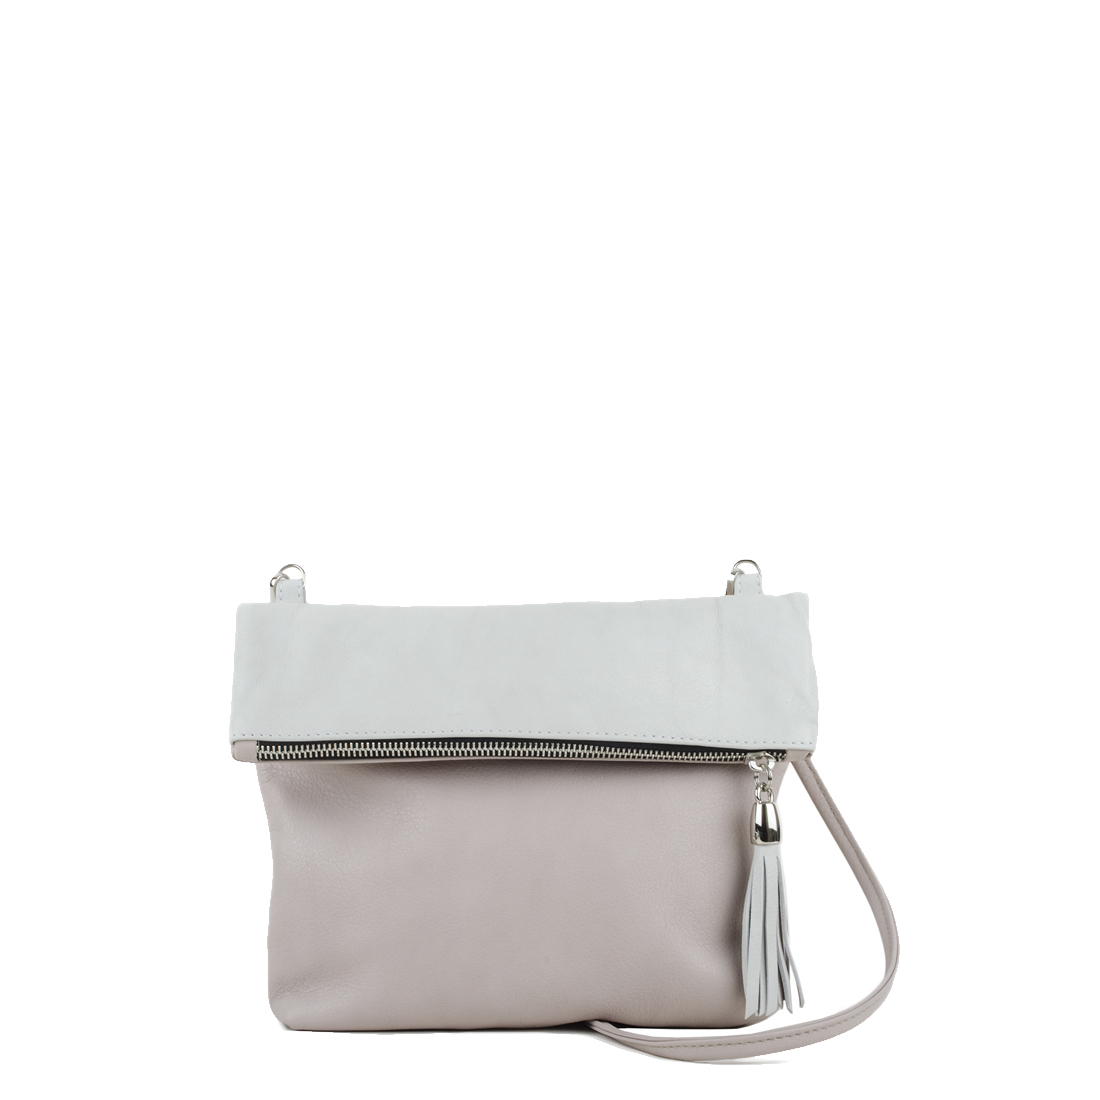 Sofia Pale Pink with Polvere Across Body Bag